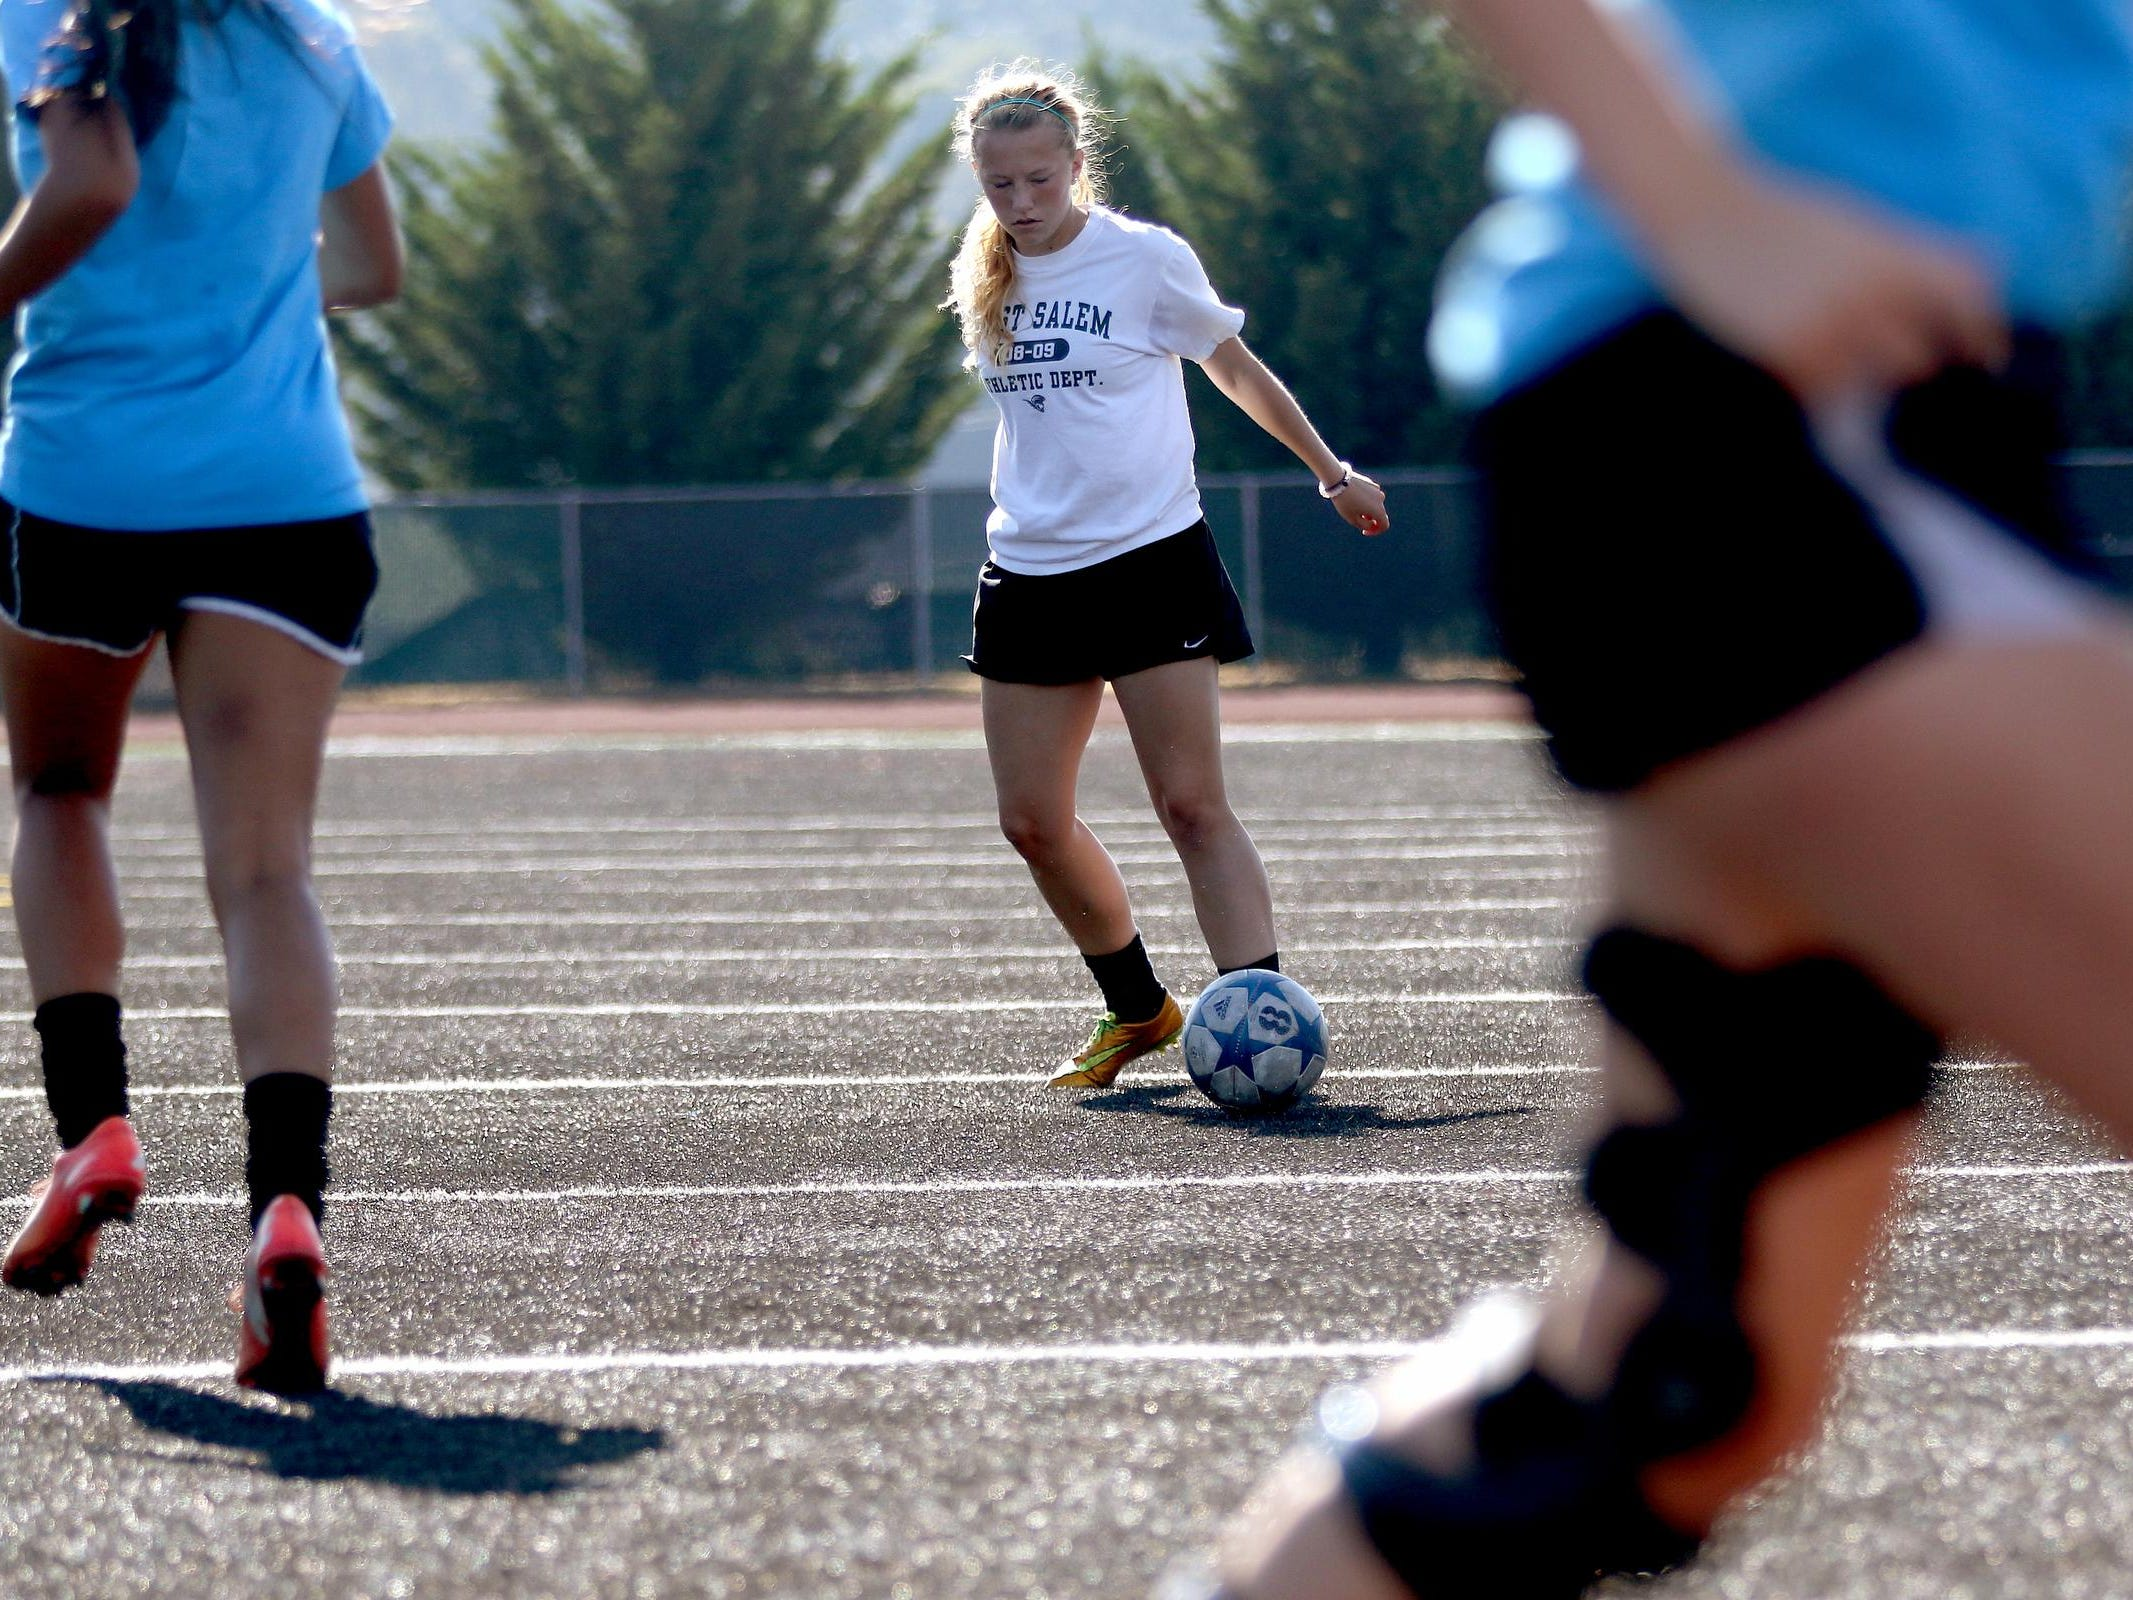 Senior Anna Norrenberns moves with the ball during girl's soccer practice at West Salem High School on Thursday, Aug. 27, 2015.